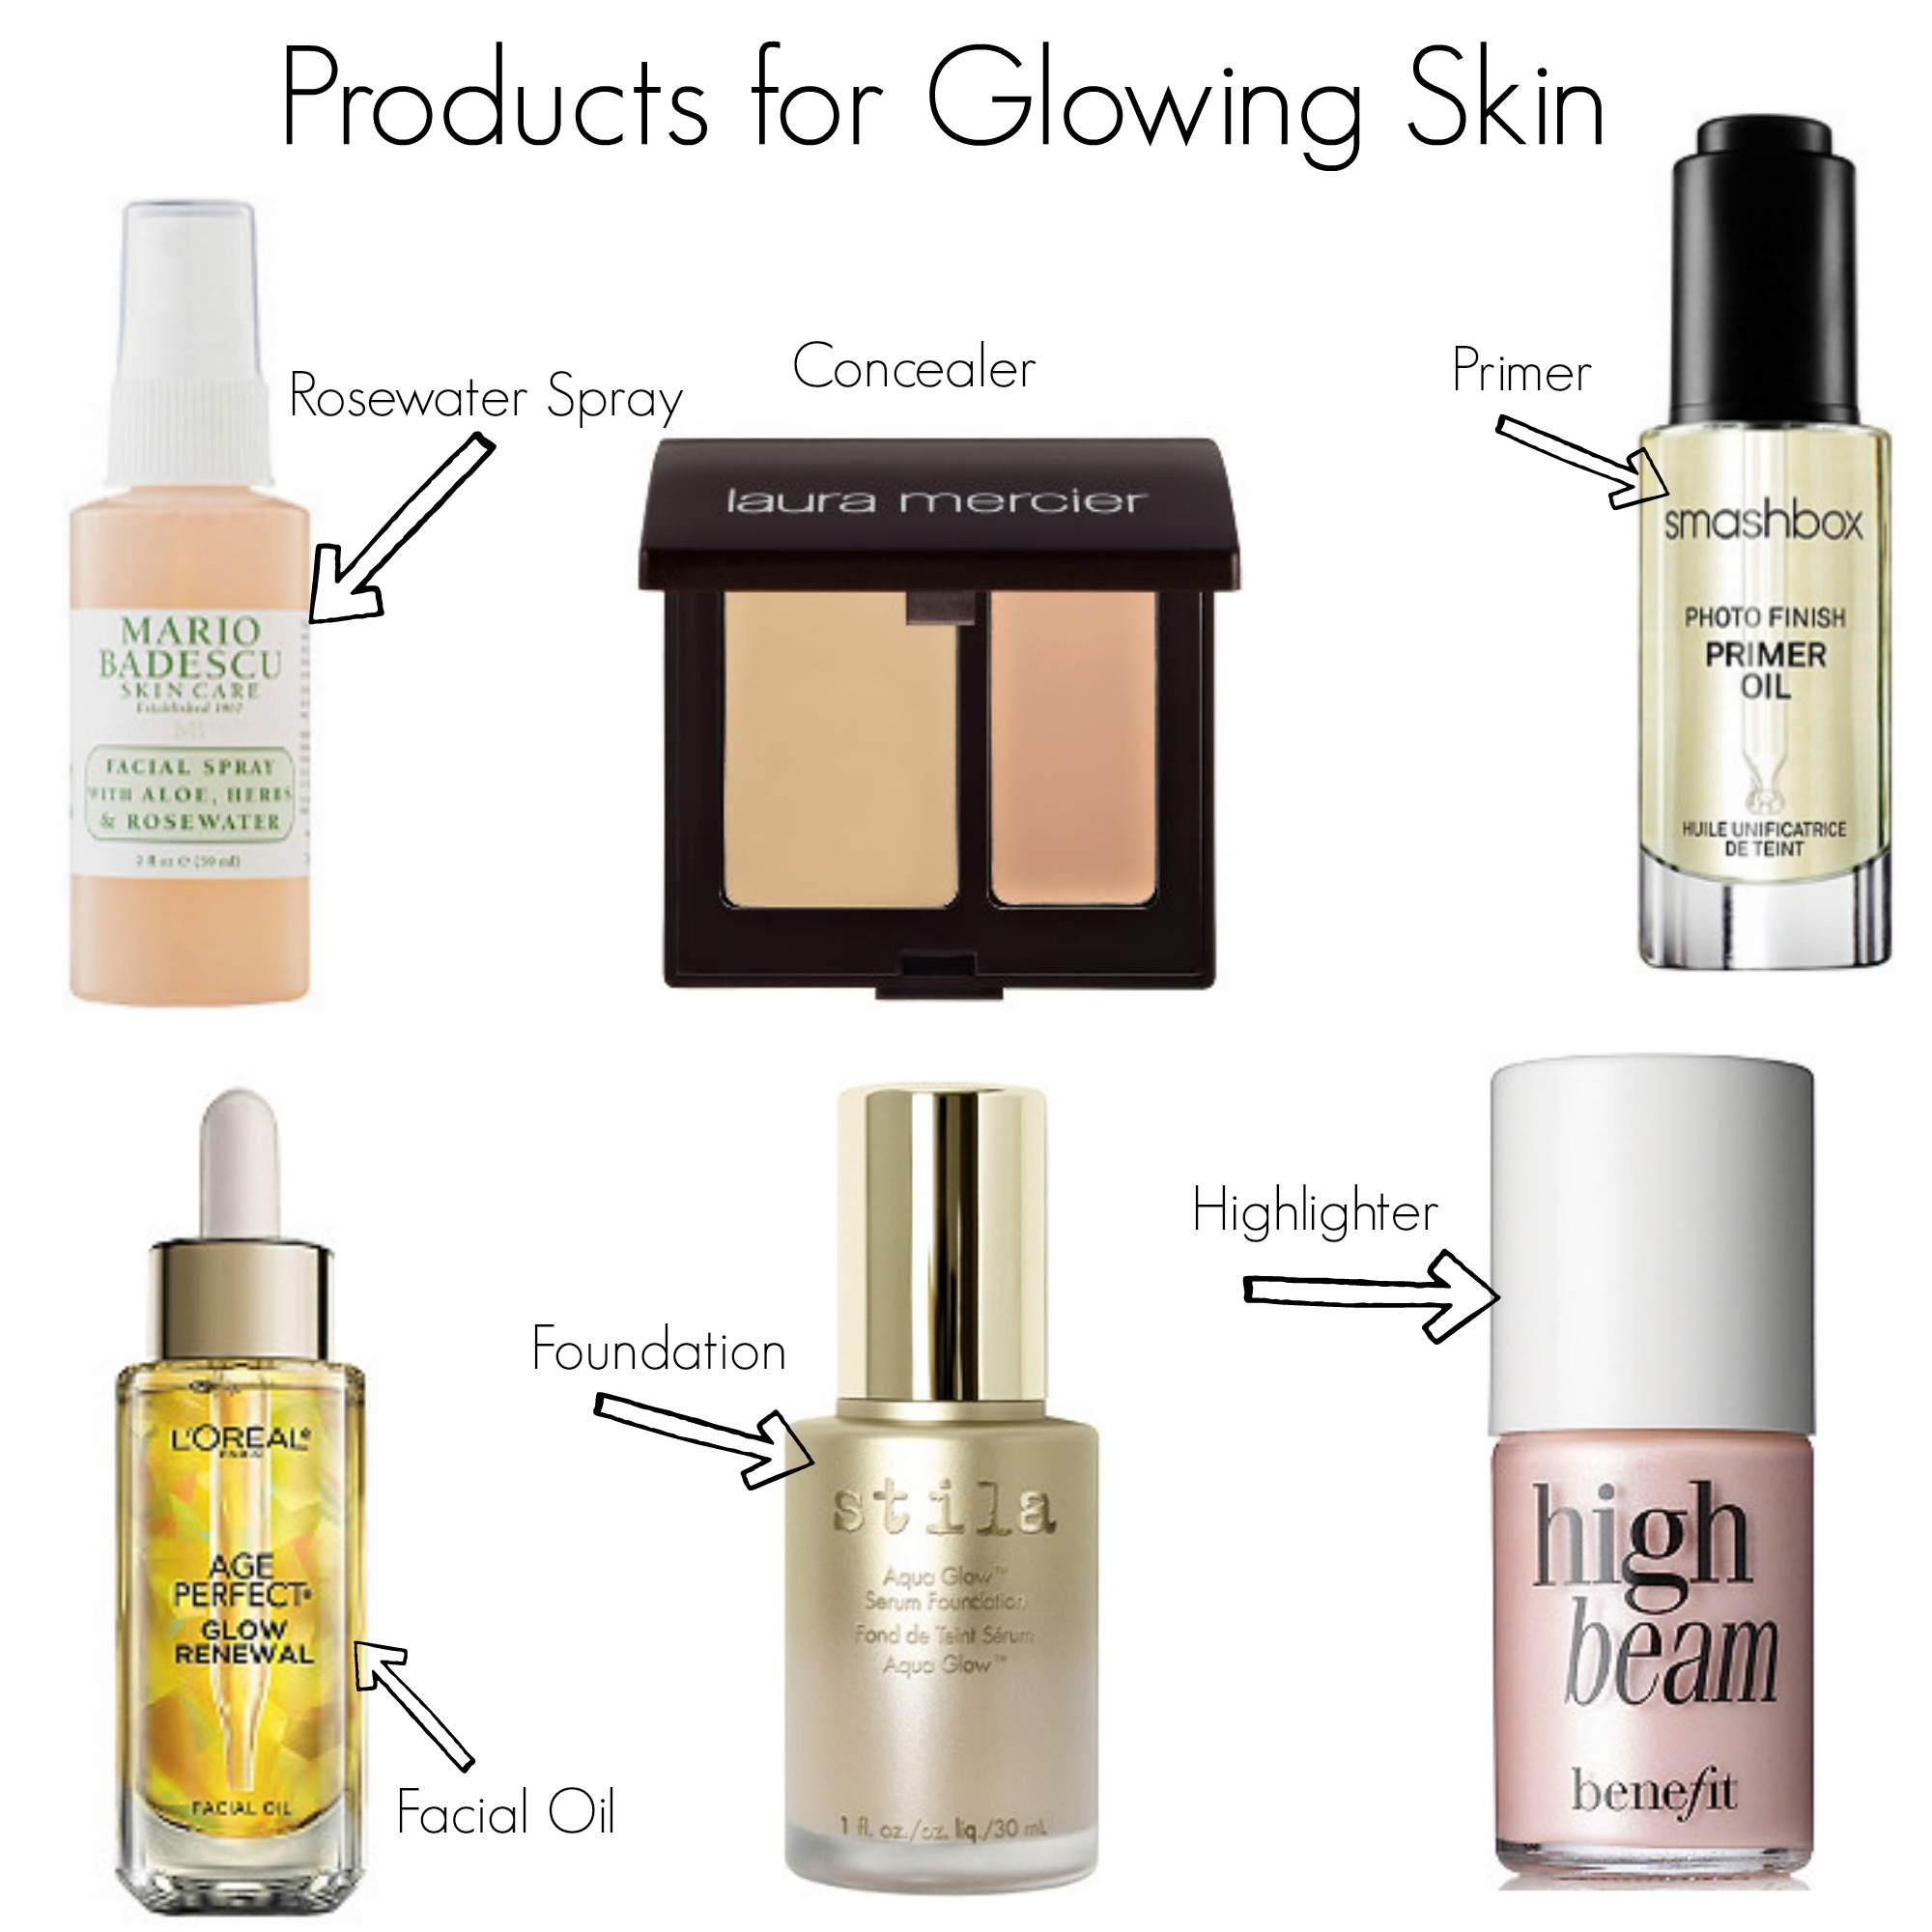 Products for Glowing Skin